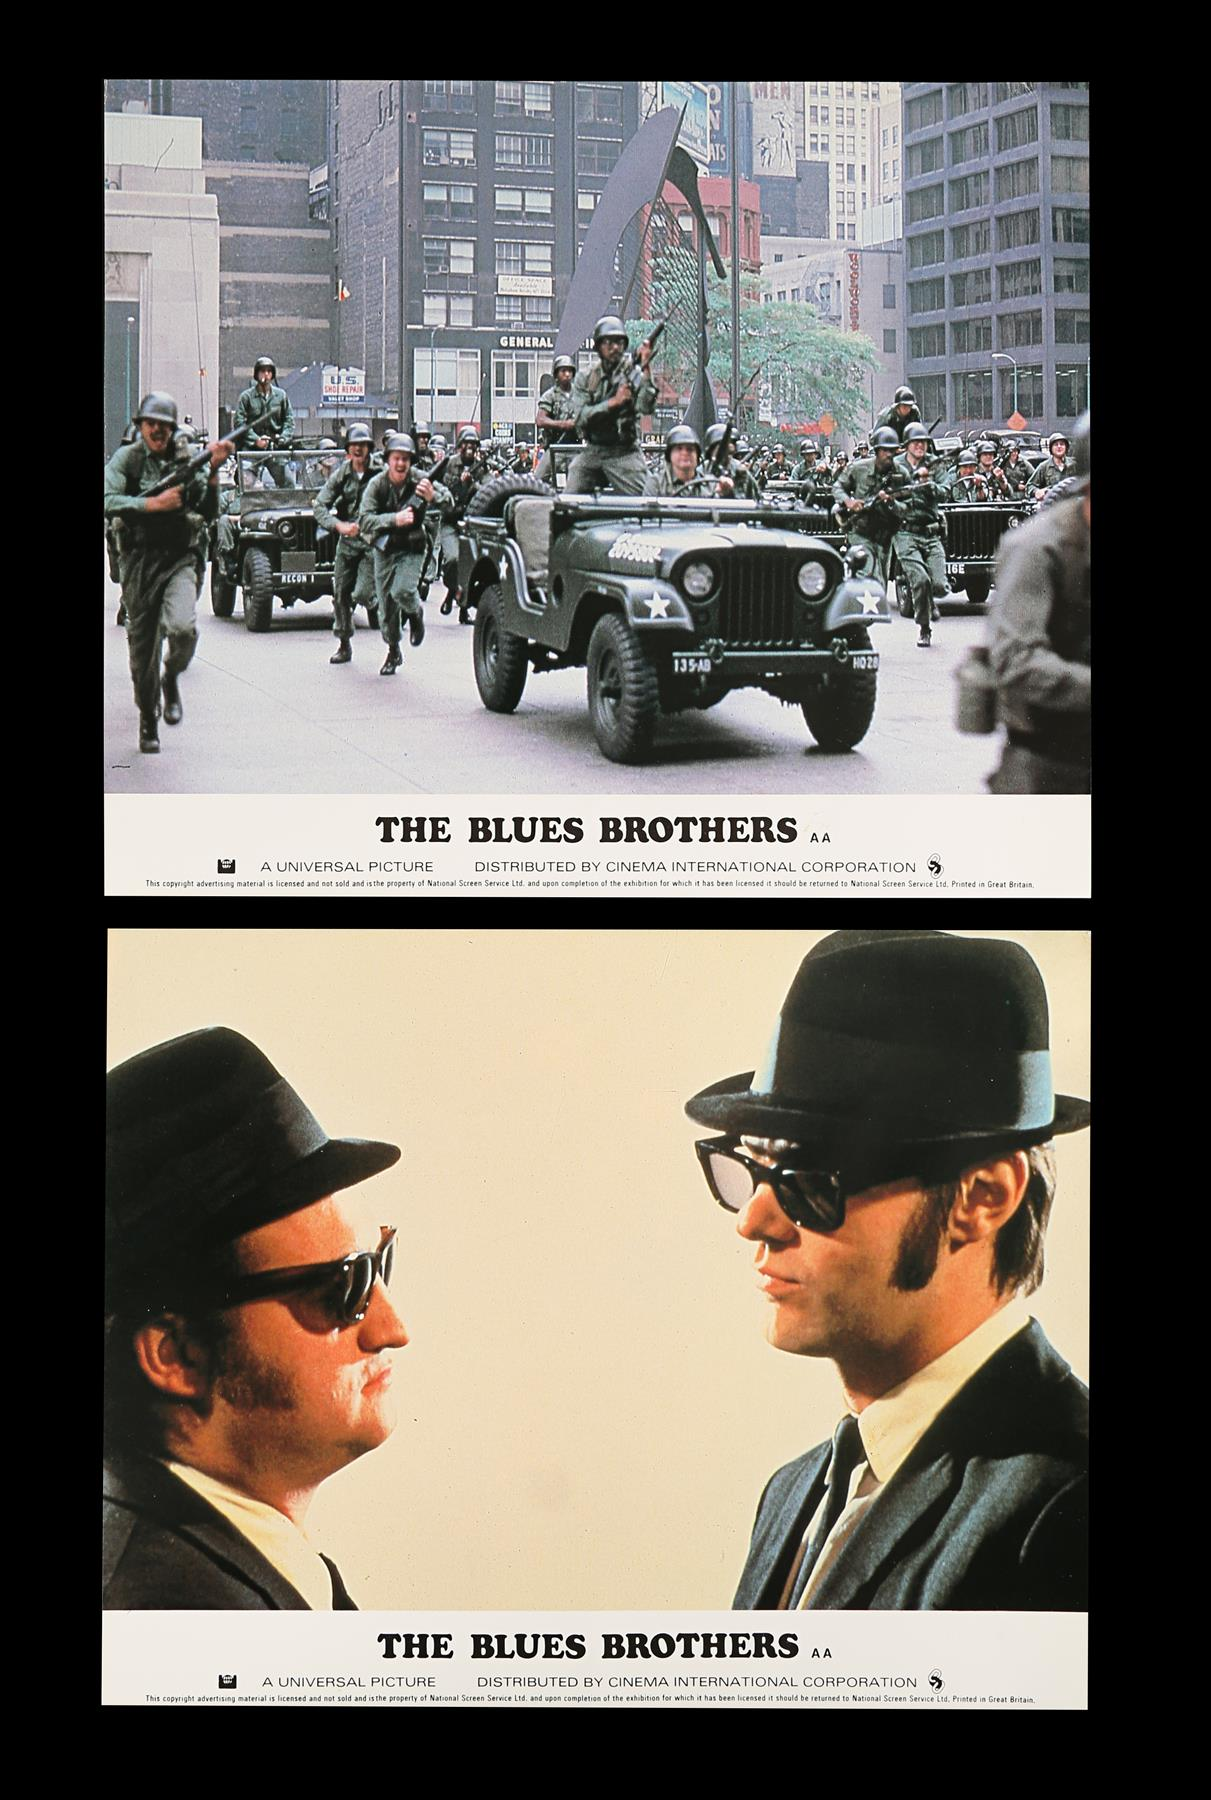 THE BLUES BROTHERS (1980) - Eight British Front of House Lobby Cards, 1980 - Image 2 of 5